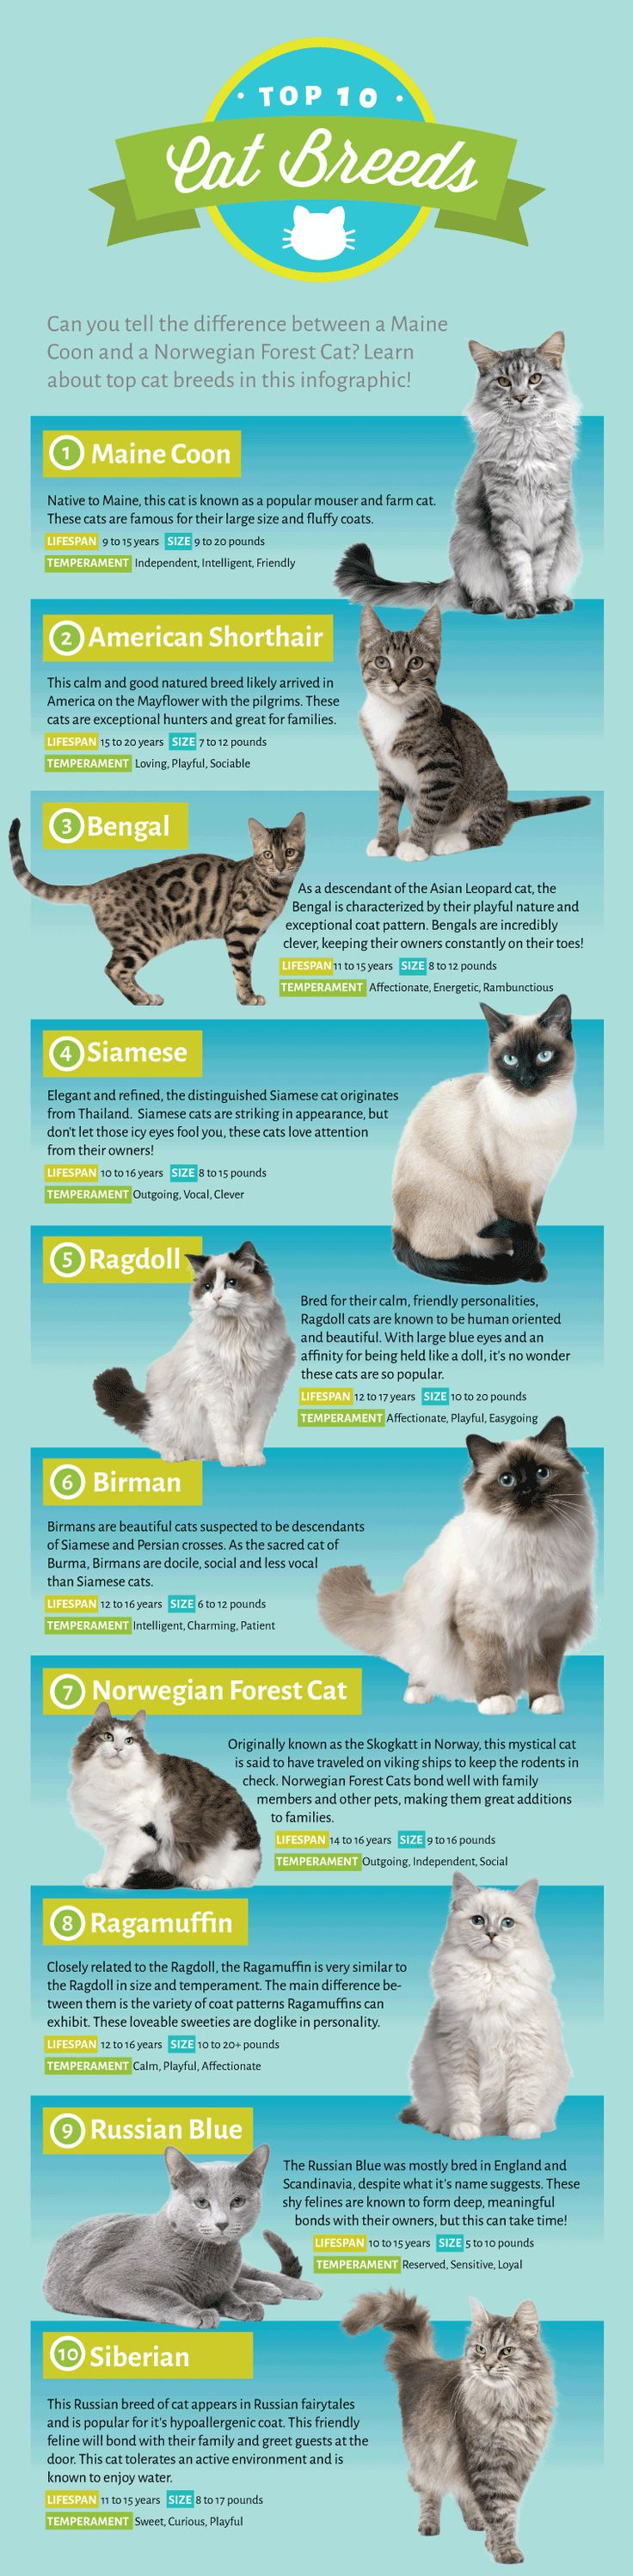 The Top #Cat Breeds of 2015, based on fan votes from around the world! Did your favorites make the list?